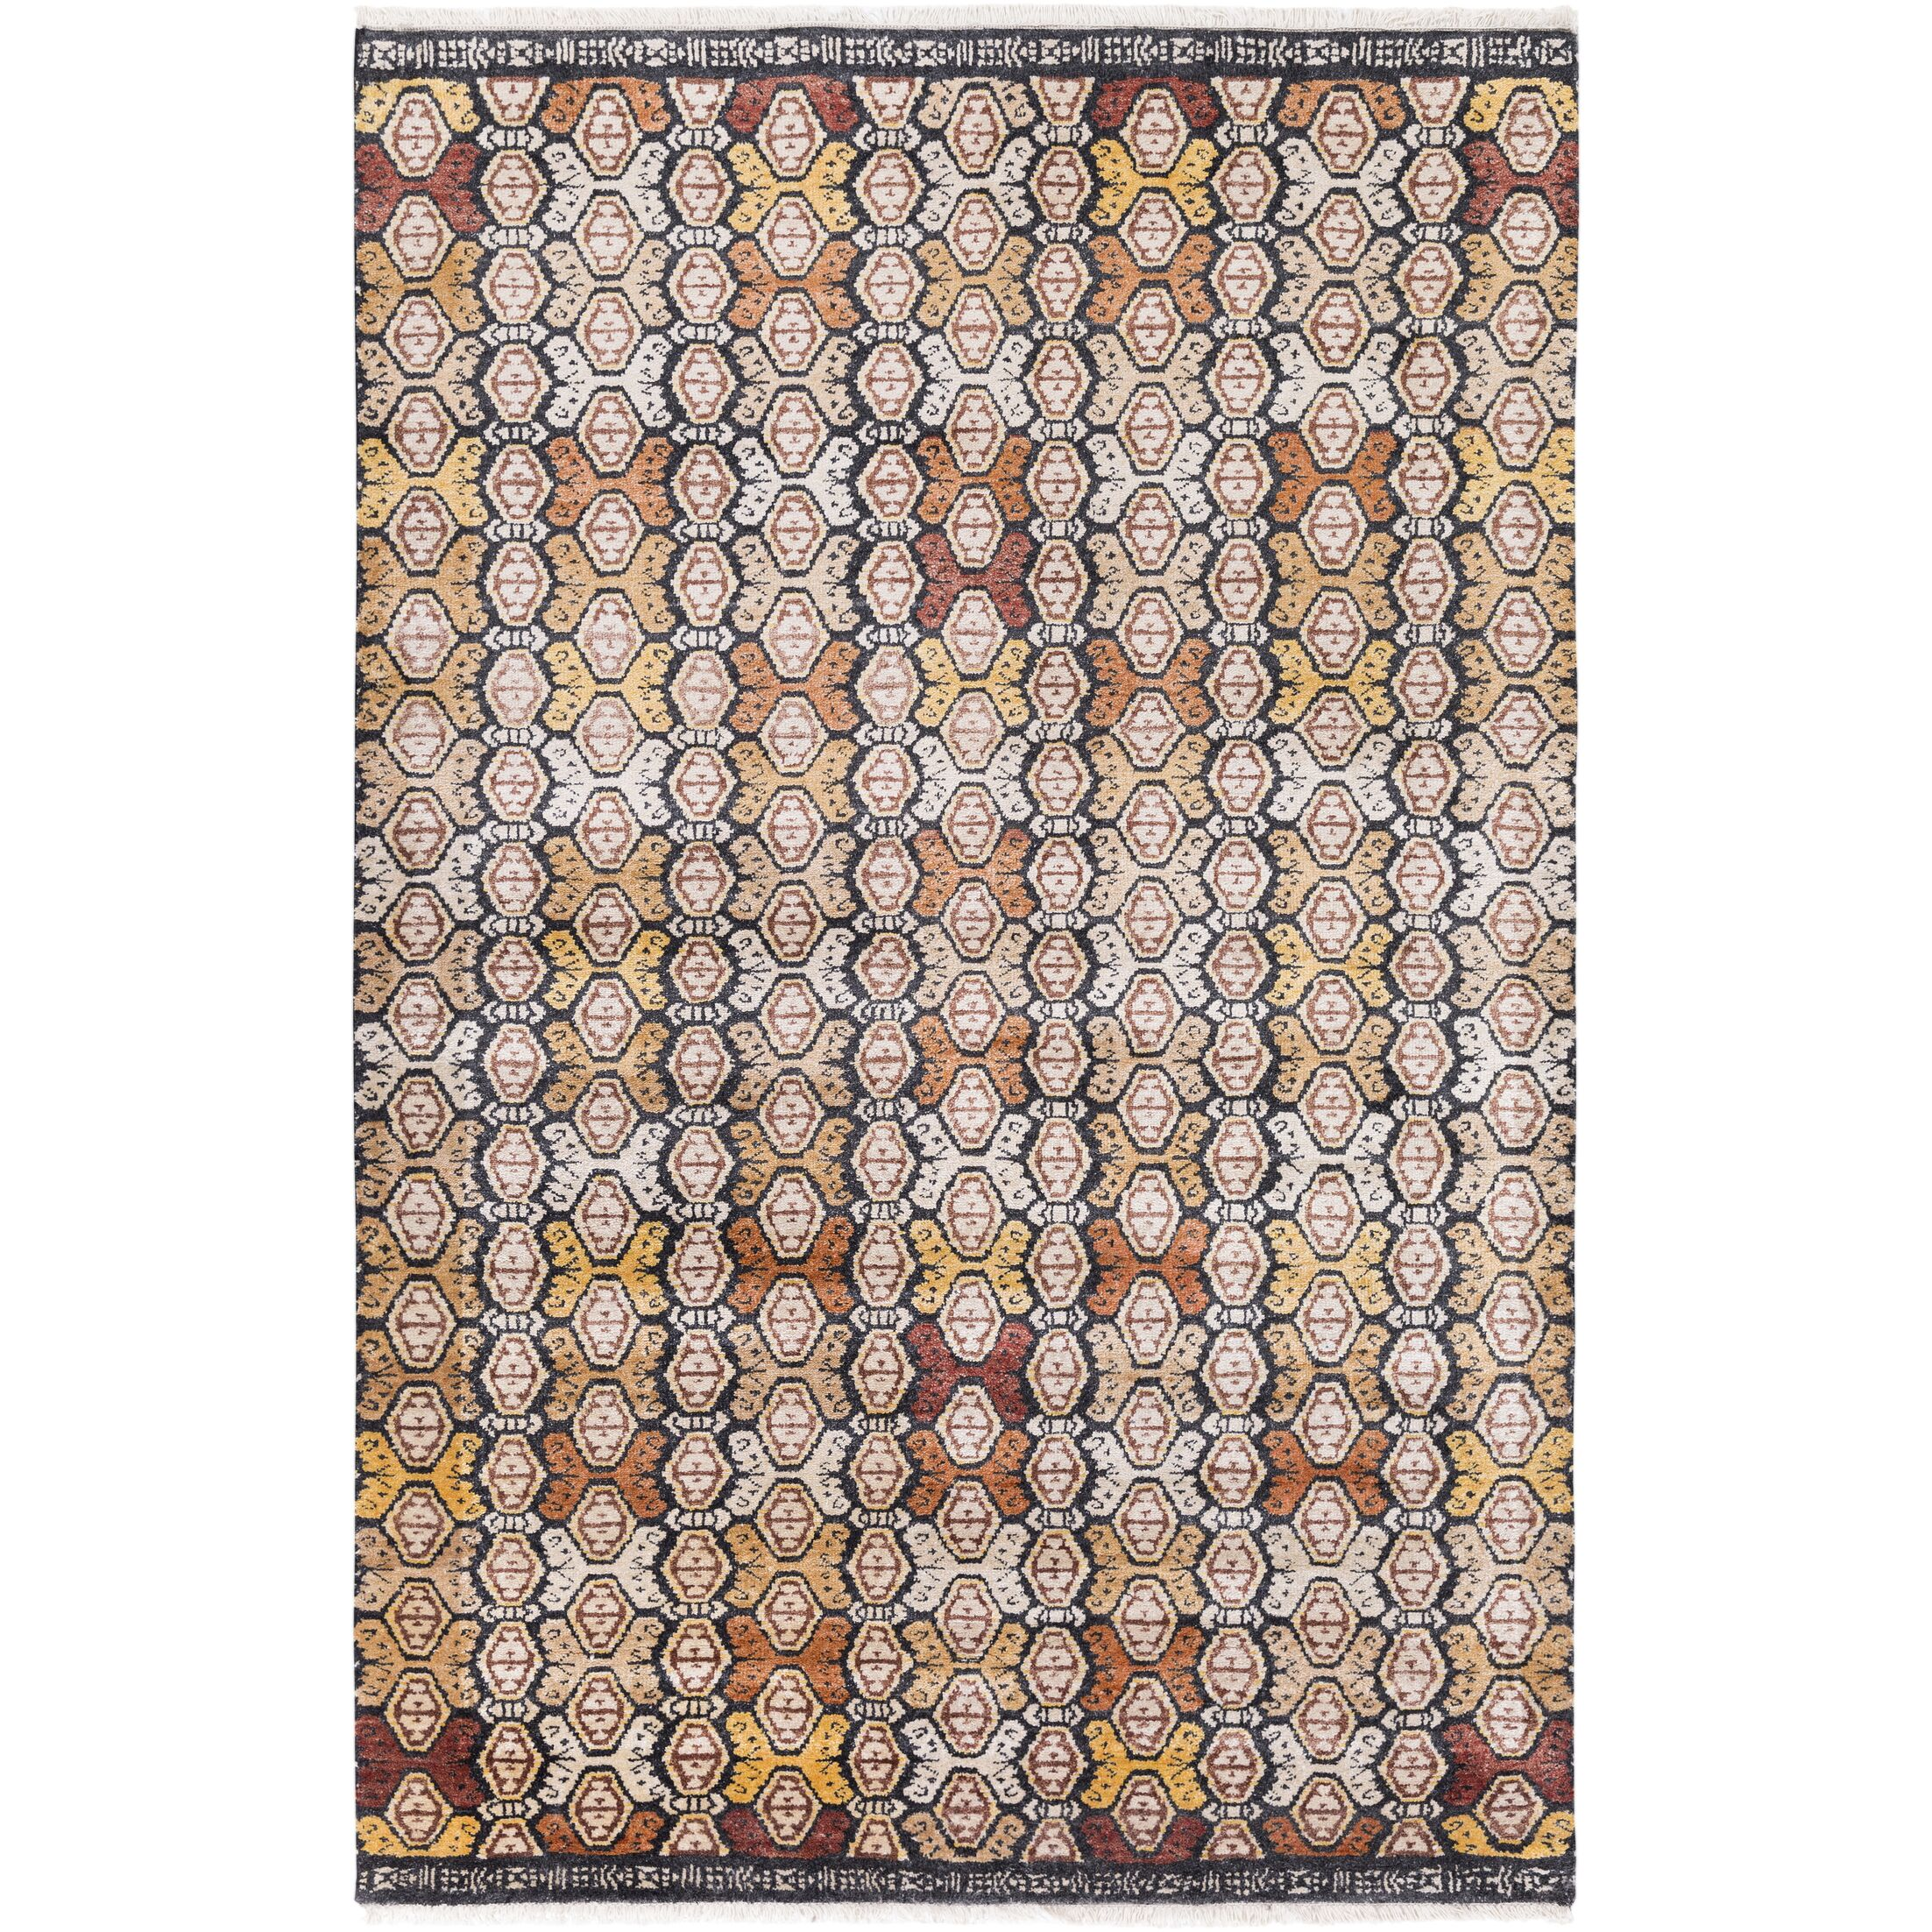 Seline Hand-Knotted Wool Neutral/Brown Area Rug Rug Size: Rectangle 2' x 3'